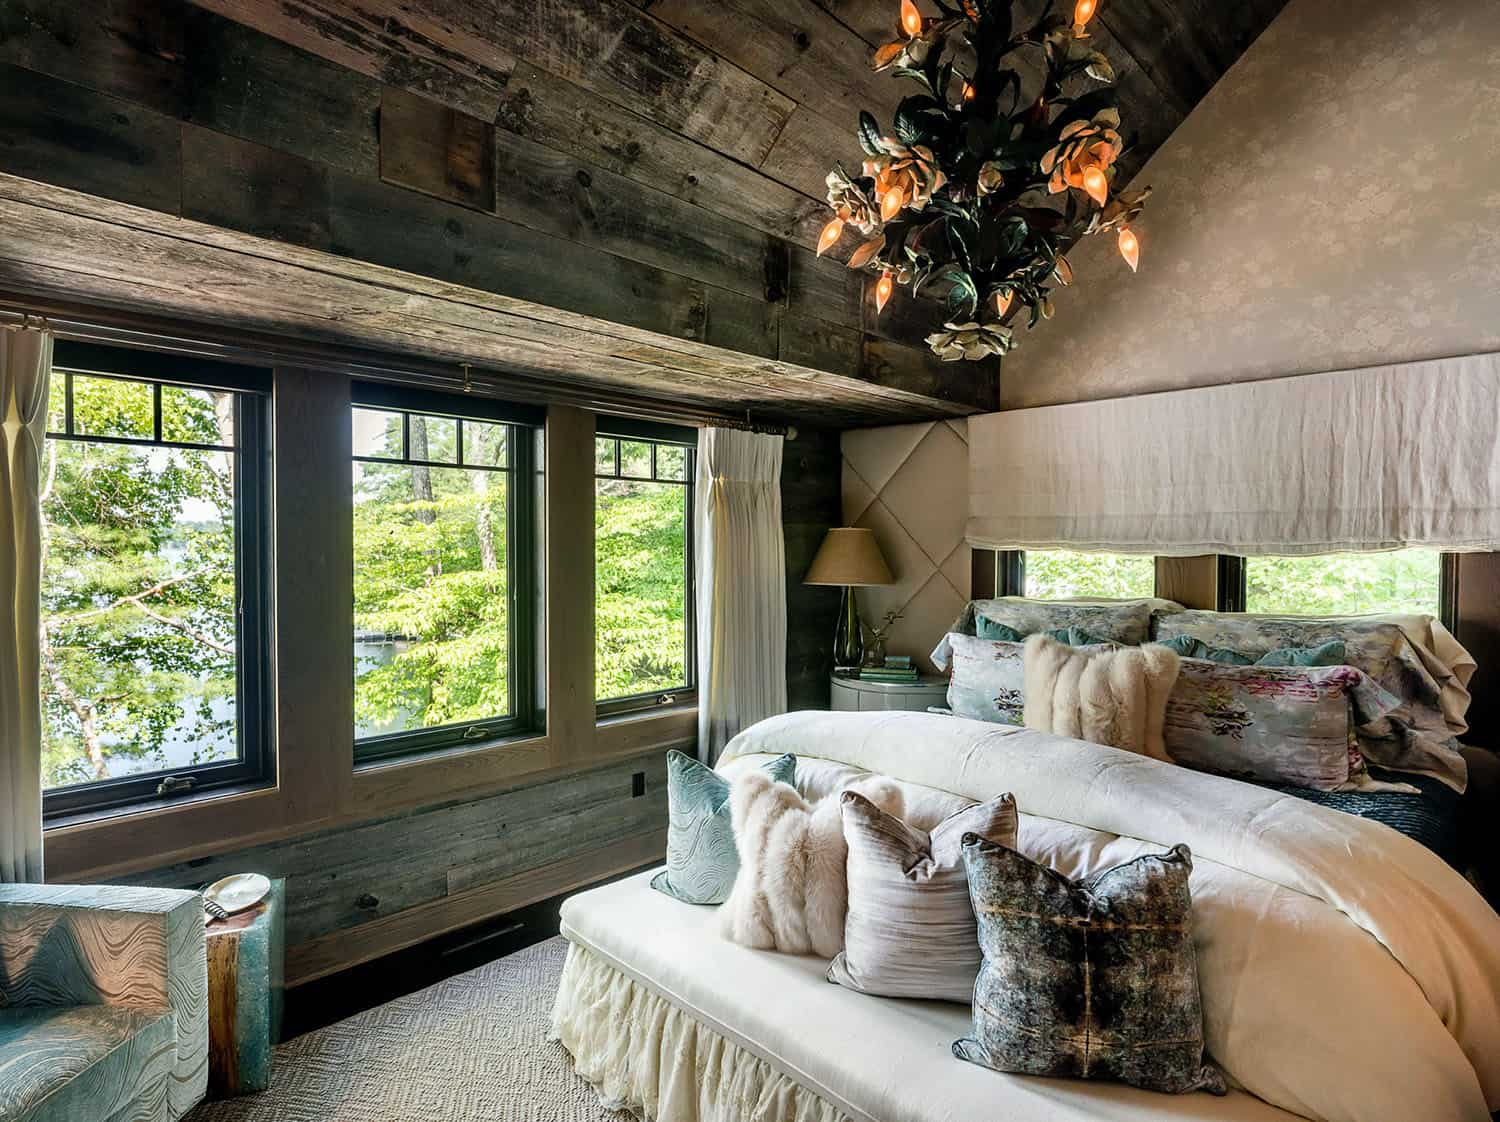 barn-style-bedroom-design-with-reclaimed-wood-ceiling